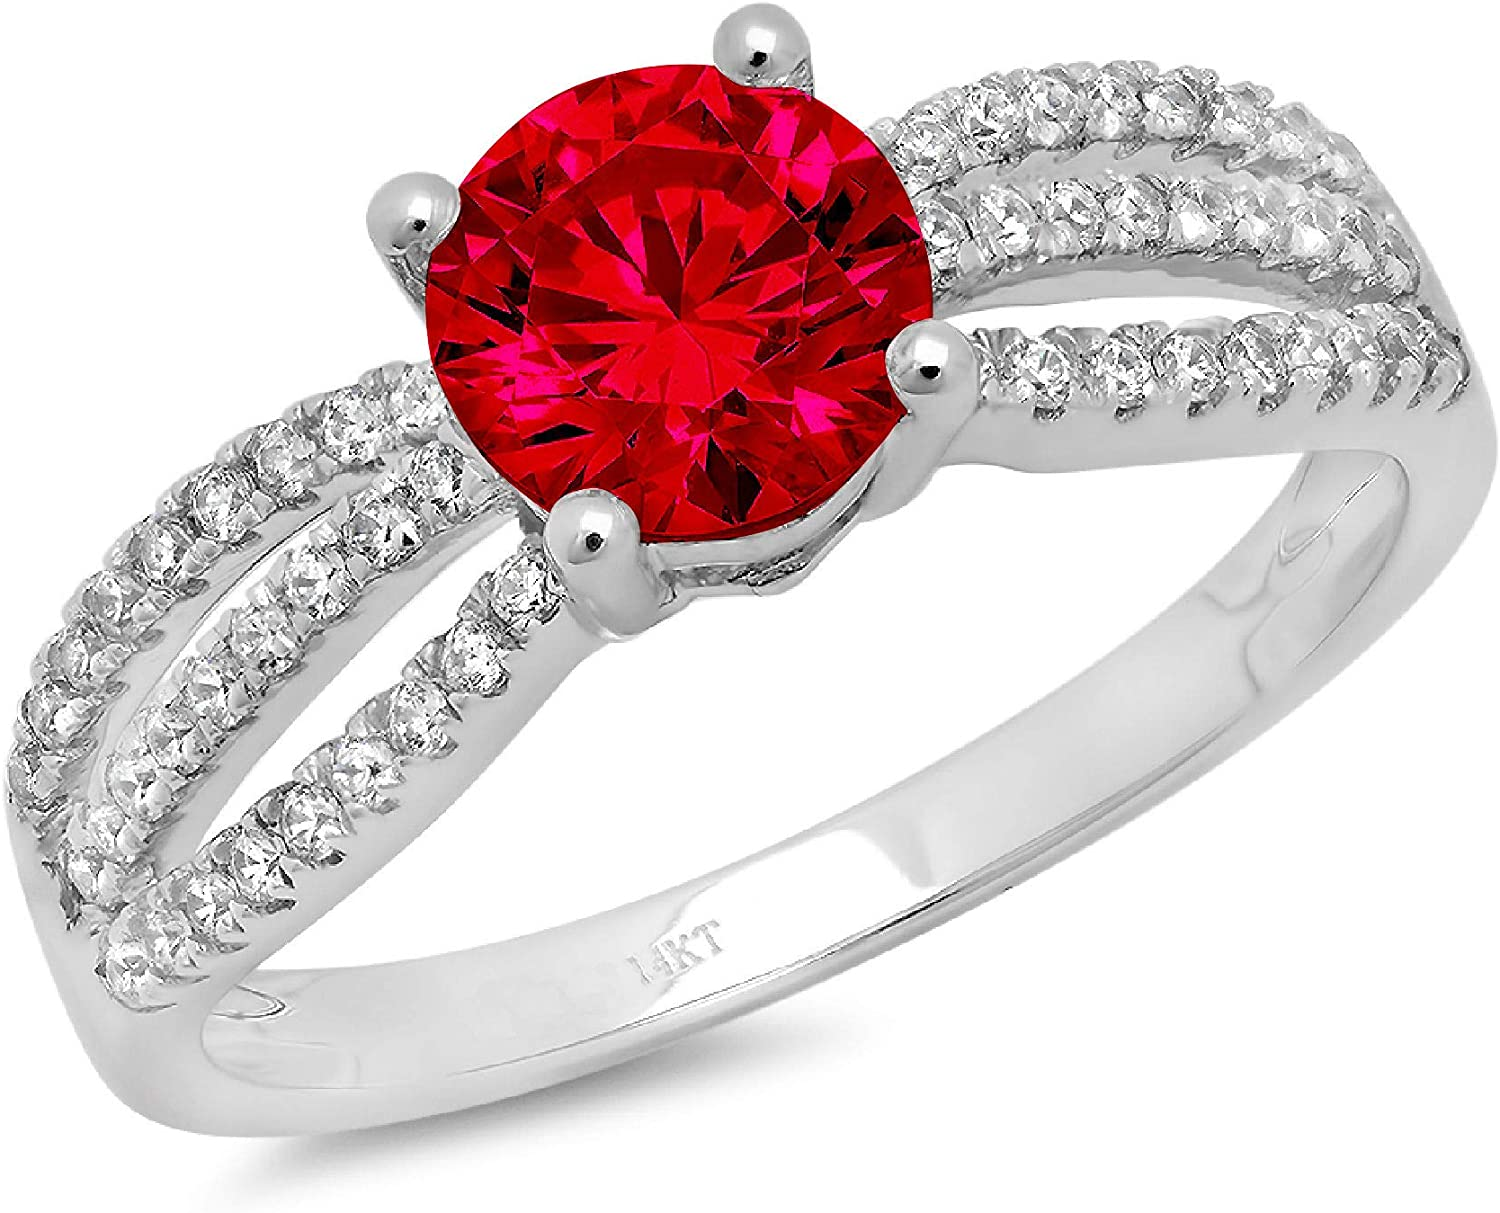 1.25ct OFFicial store online shop Brilliant Round Cut Solitaire Accent Flawless Genuine Sim